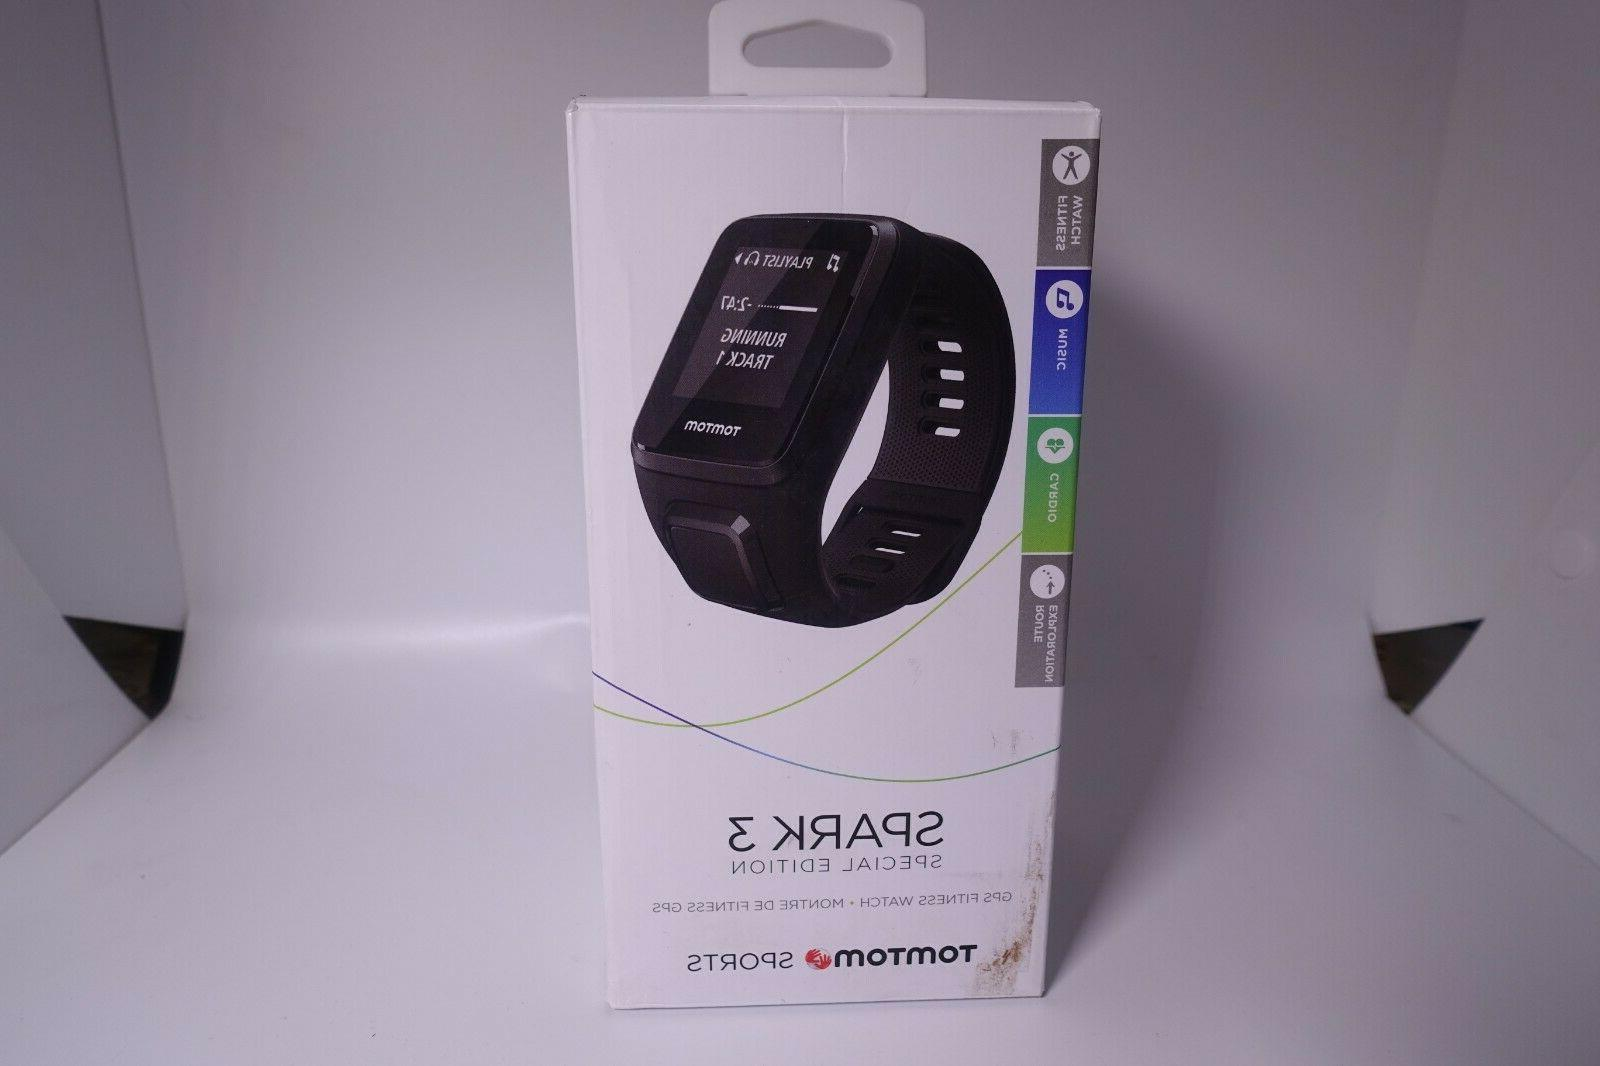 spark 3 special edition gps fitness watch